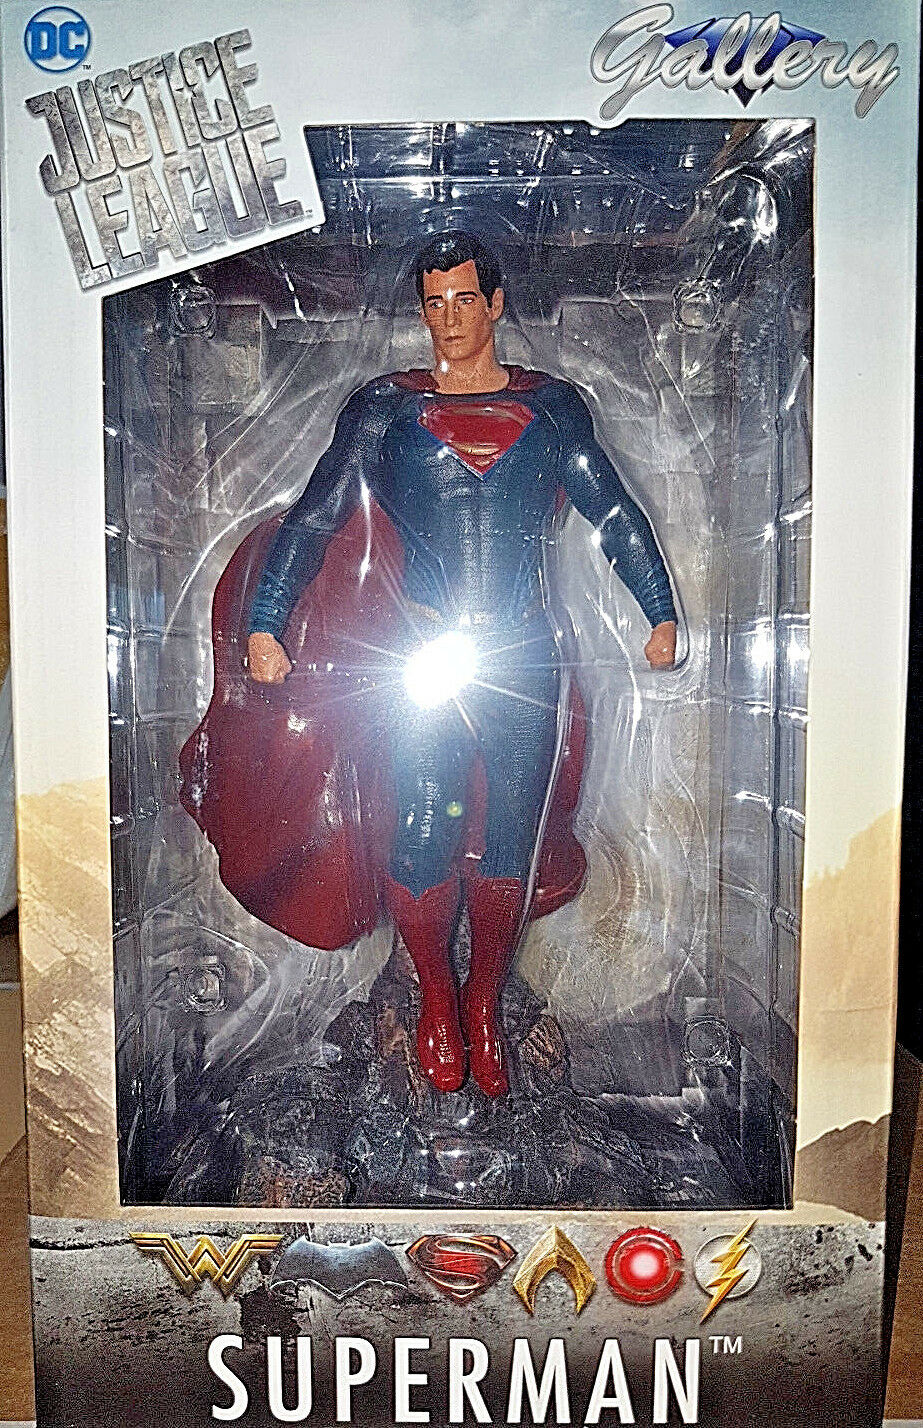 SuperMan DC Comics Justice League Gallery Diamond Select Statua 23cm